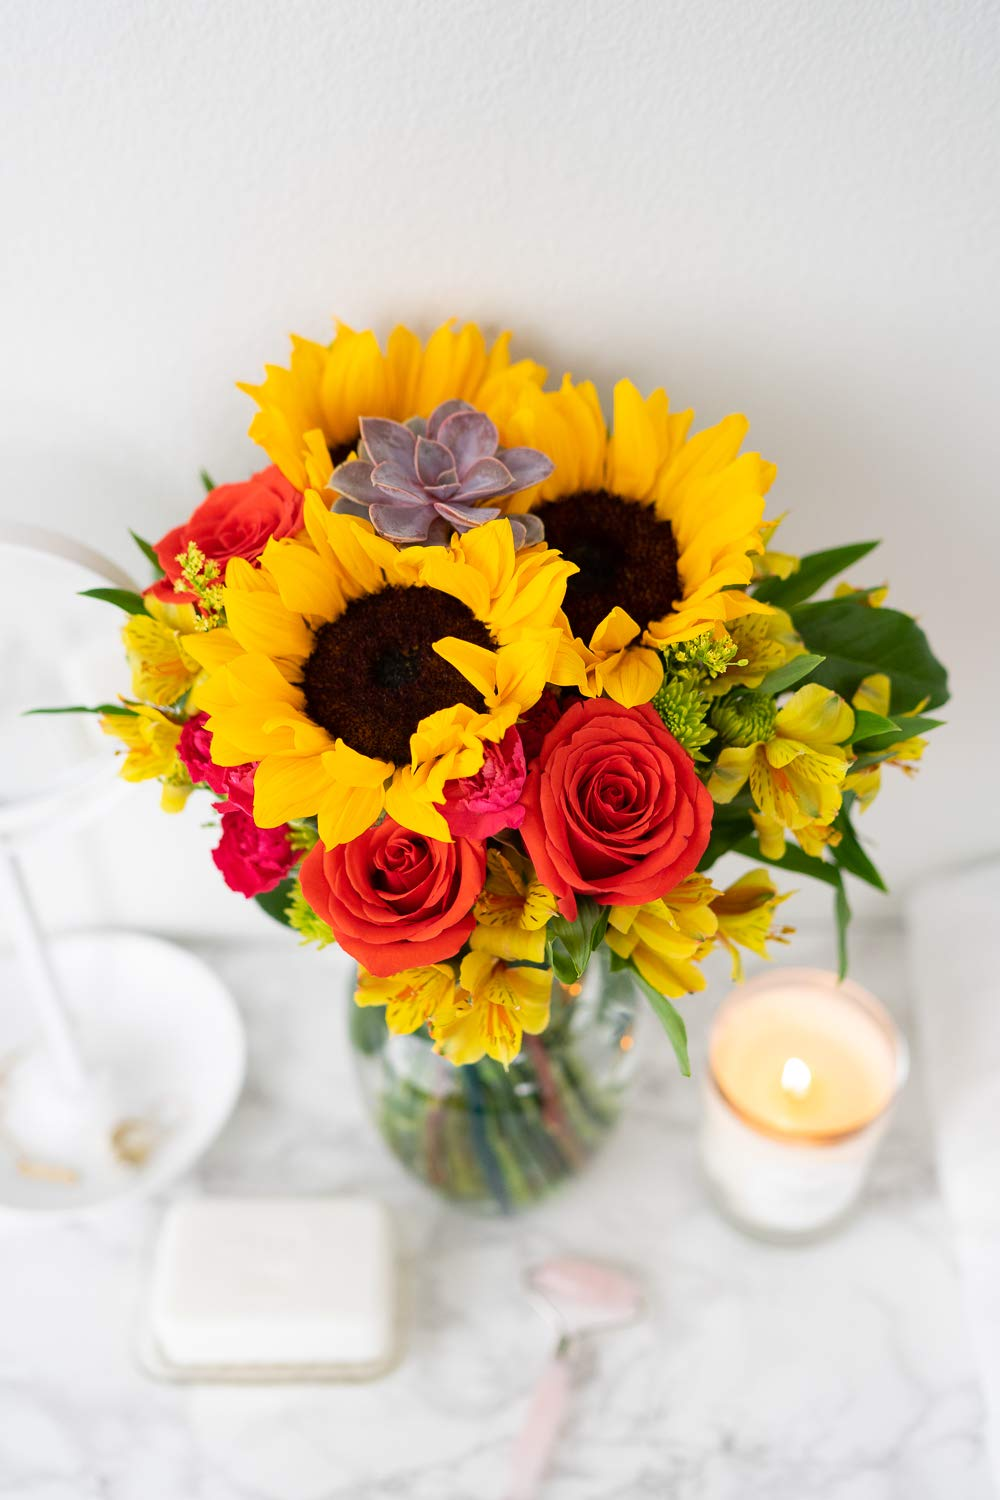 Flowers - Sunflower Succulent Bouquet (Free Vase Included)